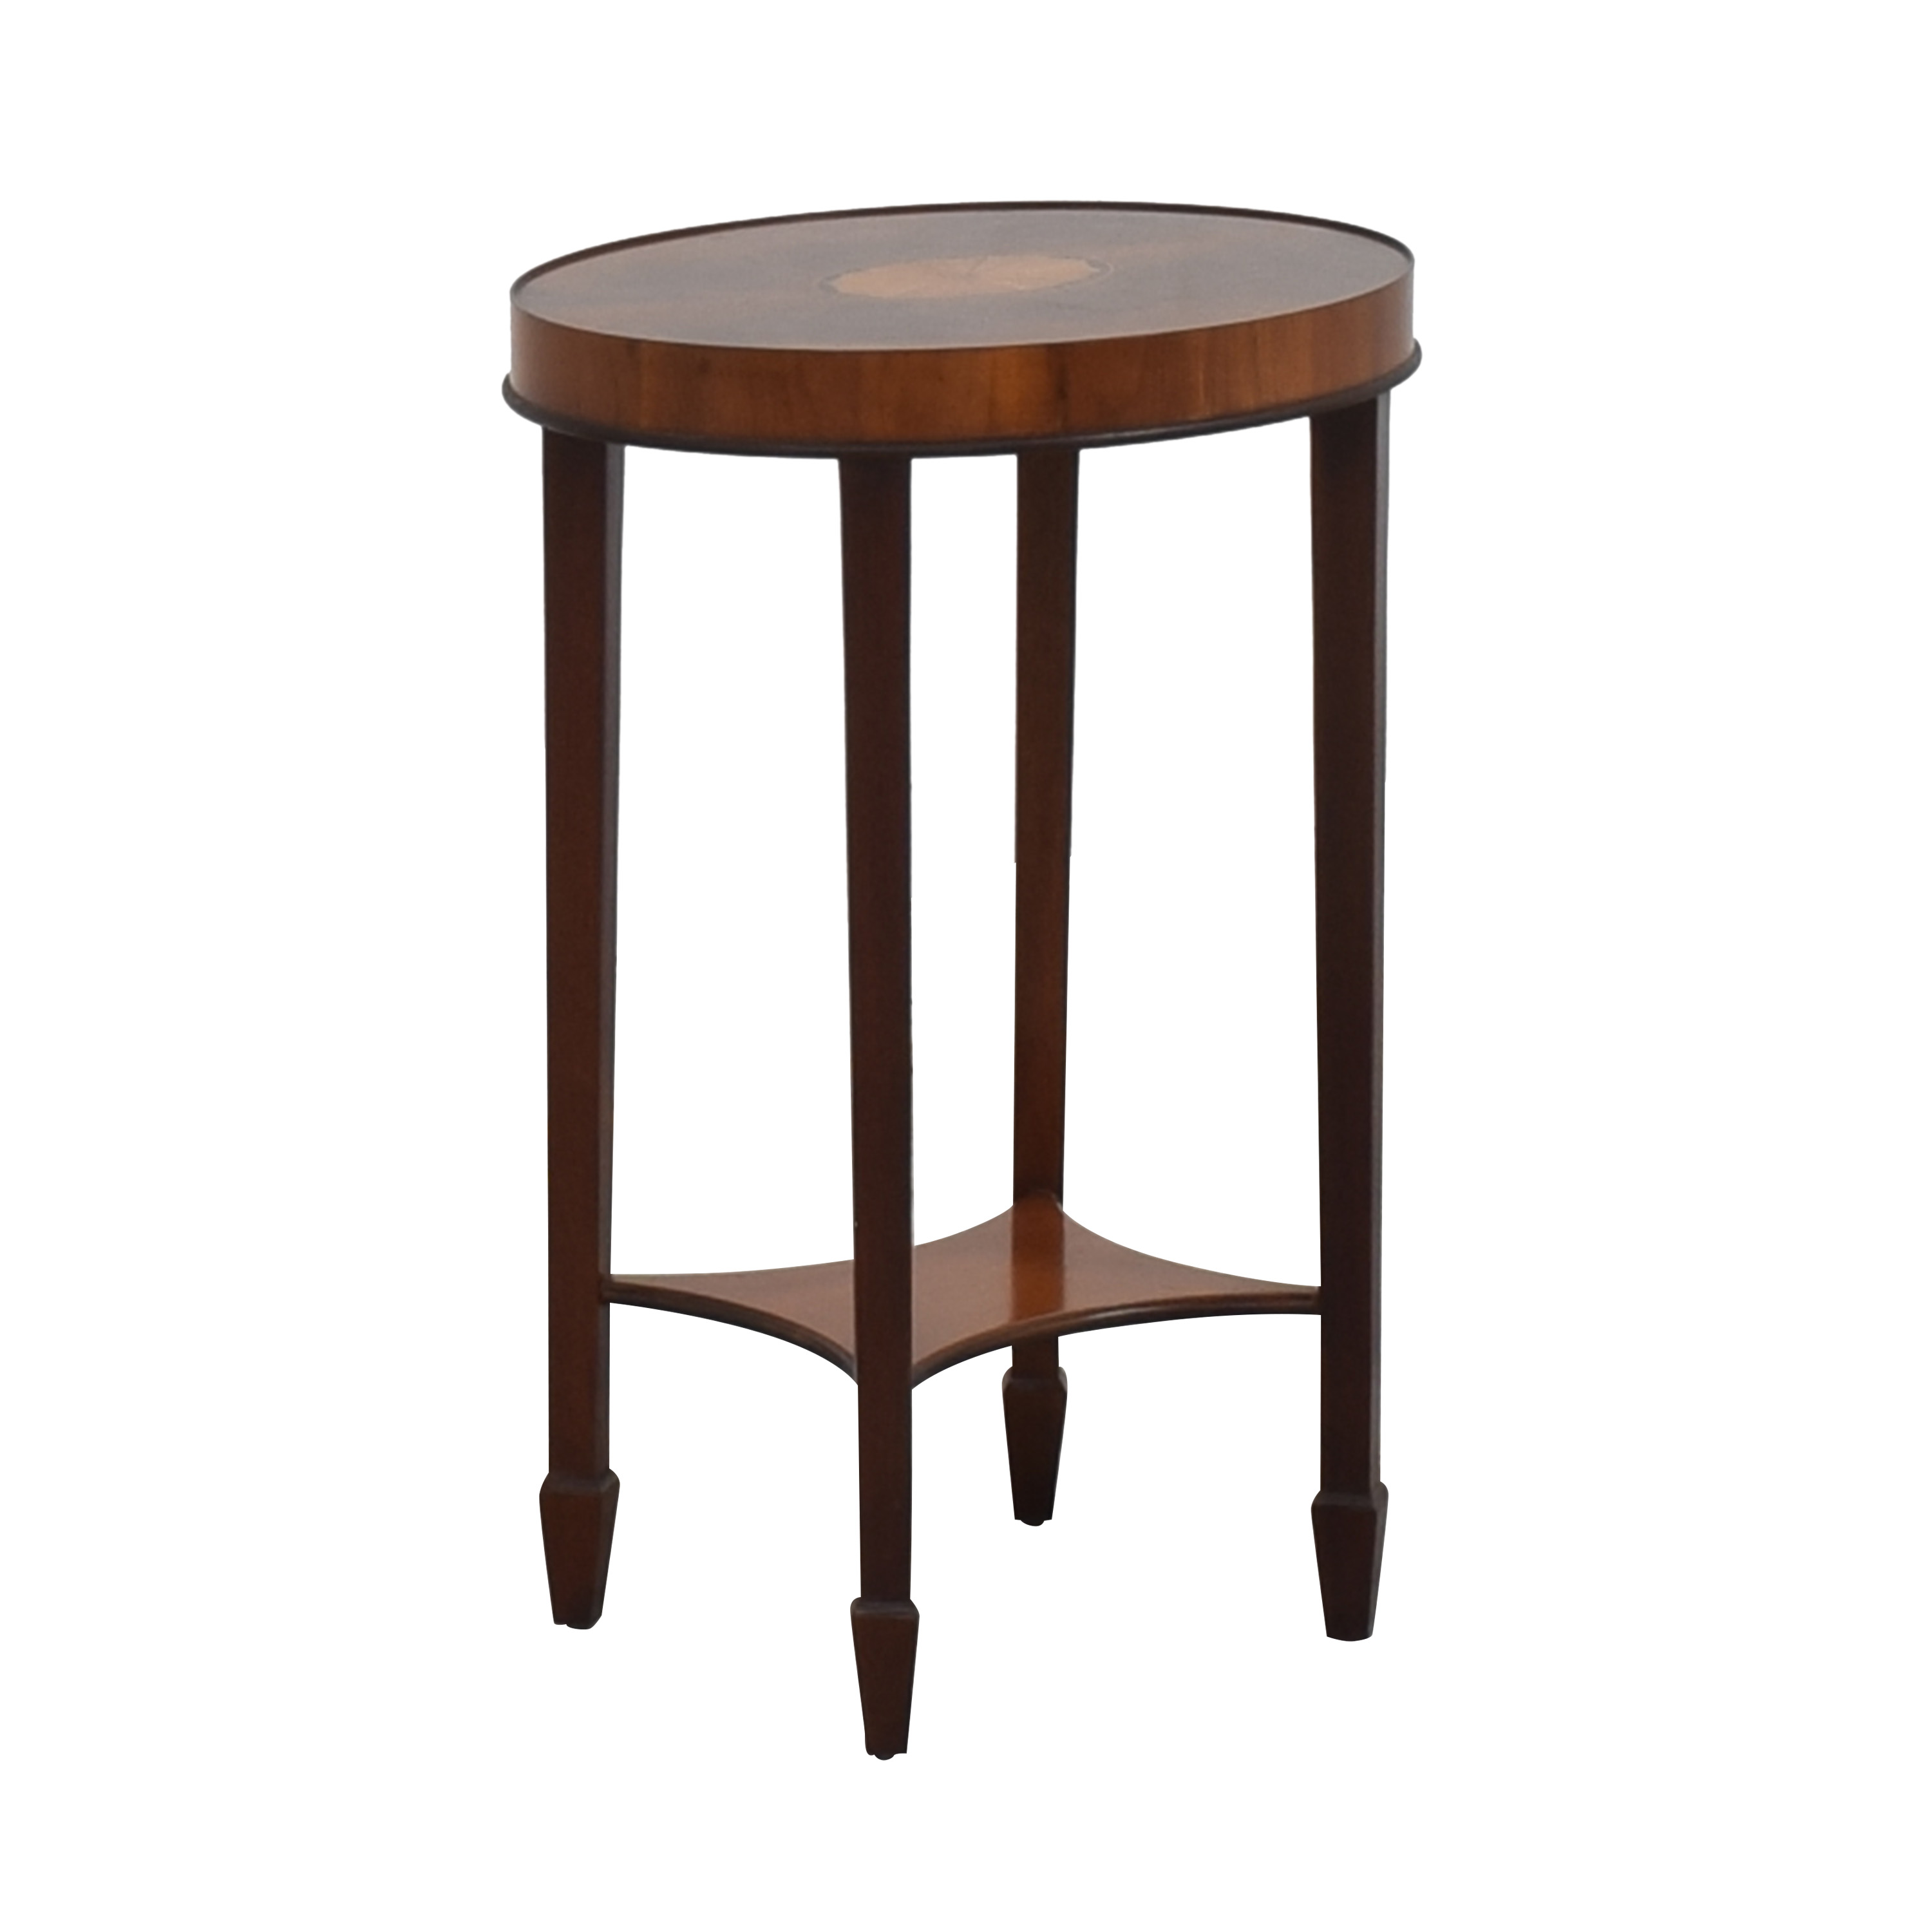 Hekman Furniture Hekman Copley Place Accent Table second hand